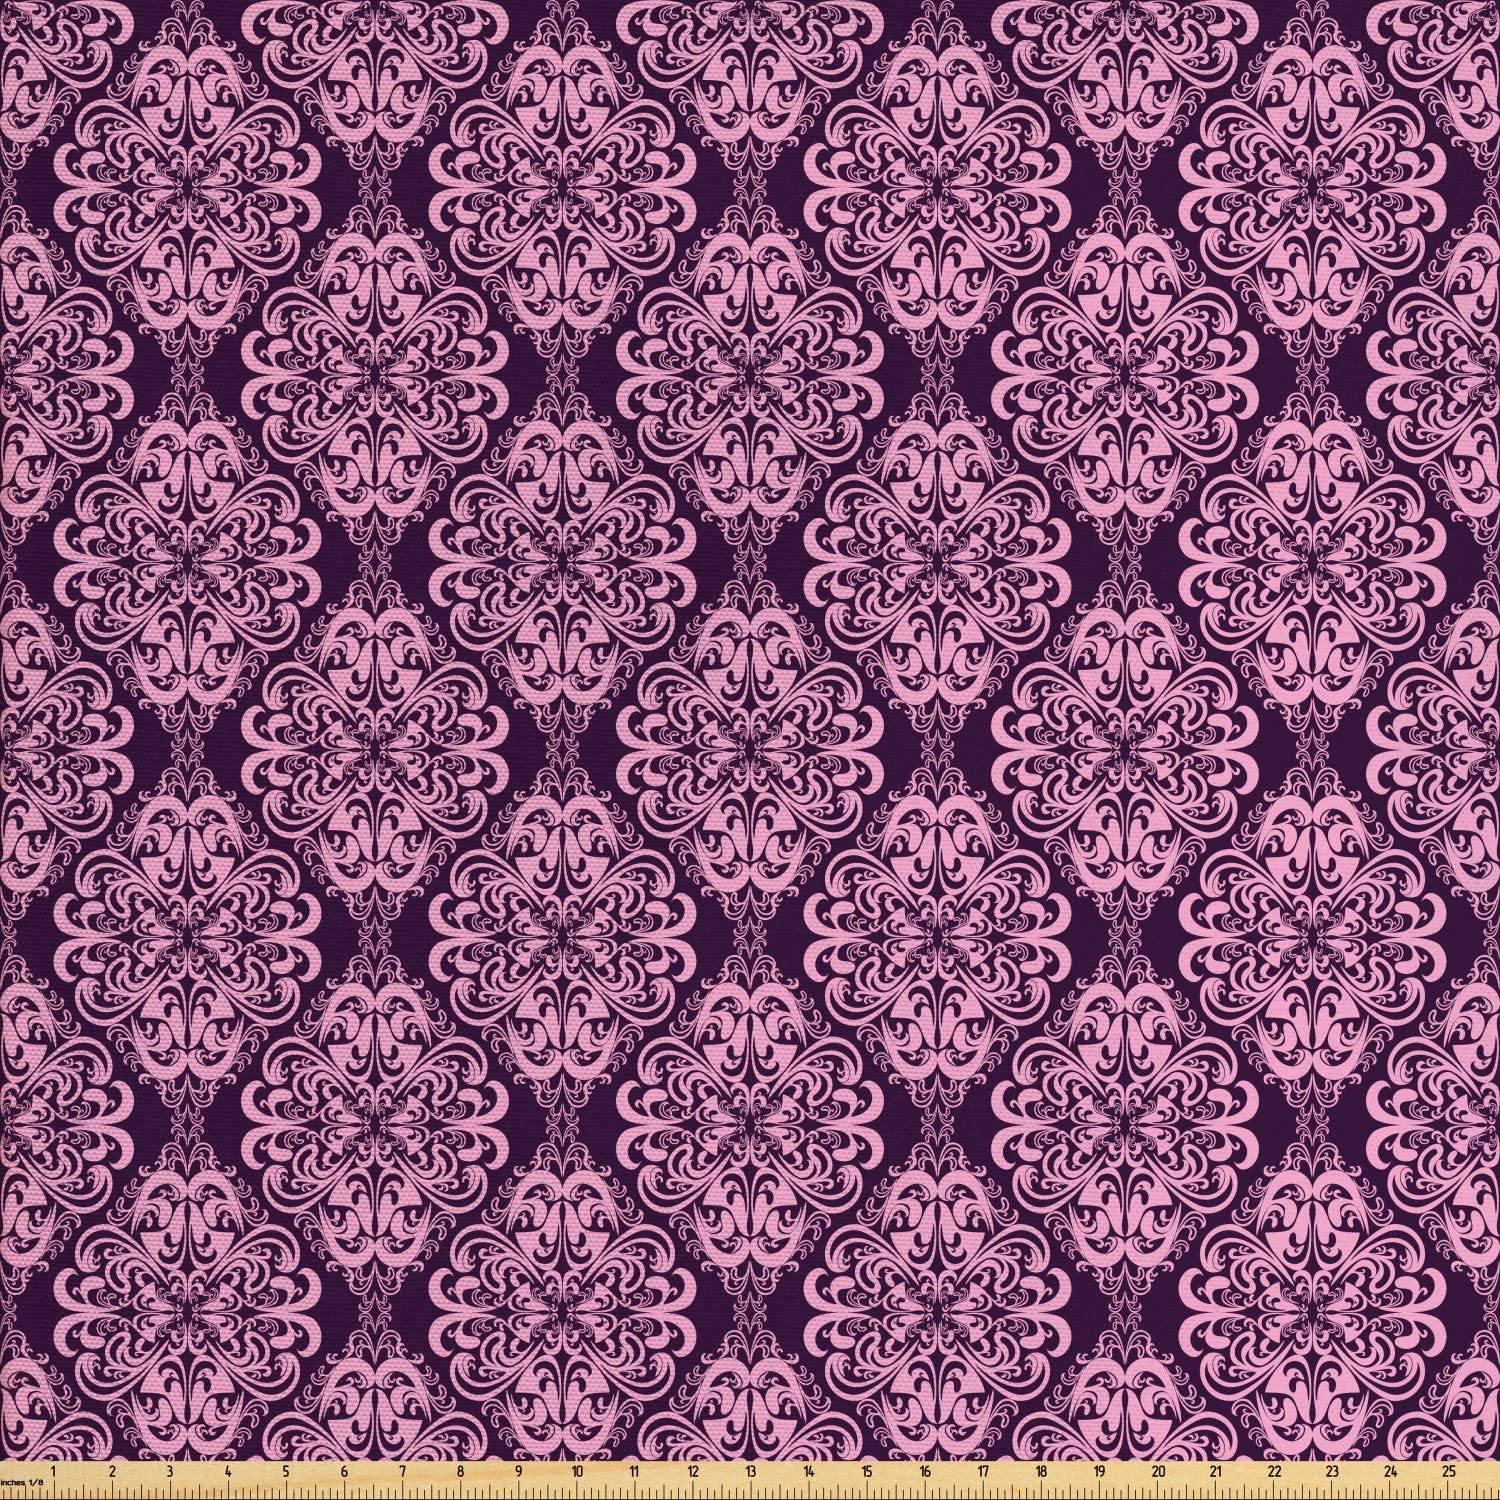 Ambesonne Purple Fabric by The Yard, Victorian Romantic Damasked Floral Oriental Swirl Pattern Artwork Image, Decorative Fabric for Upholstery and Home Accents, 1 Yard, Plum and Pale Pink